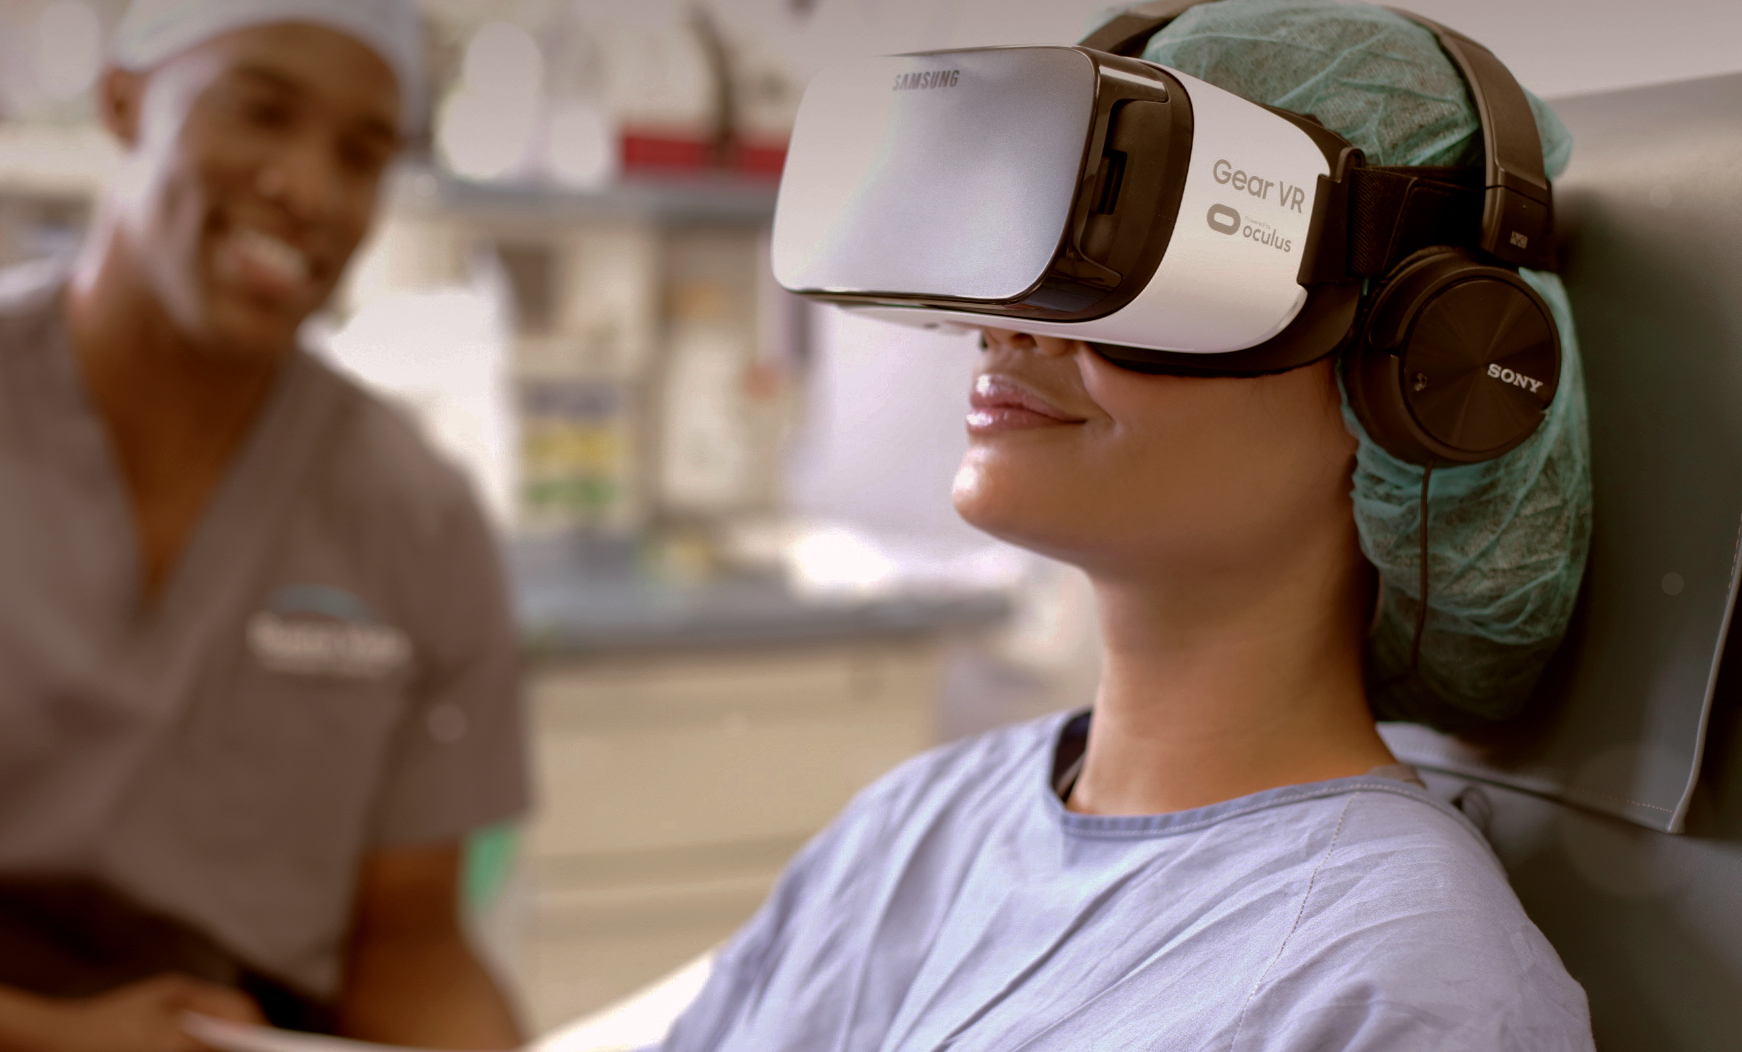 Transforming Patient Care   The first VR platform designed for healthcare    Request Free Trial